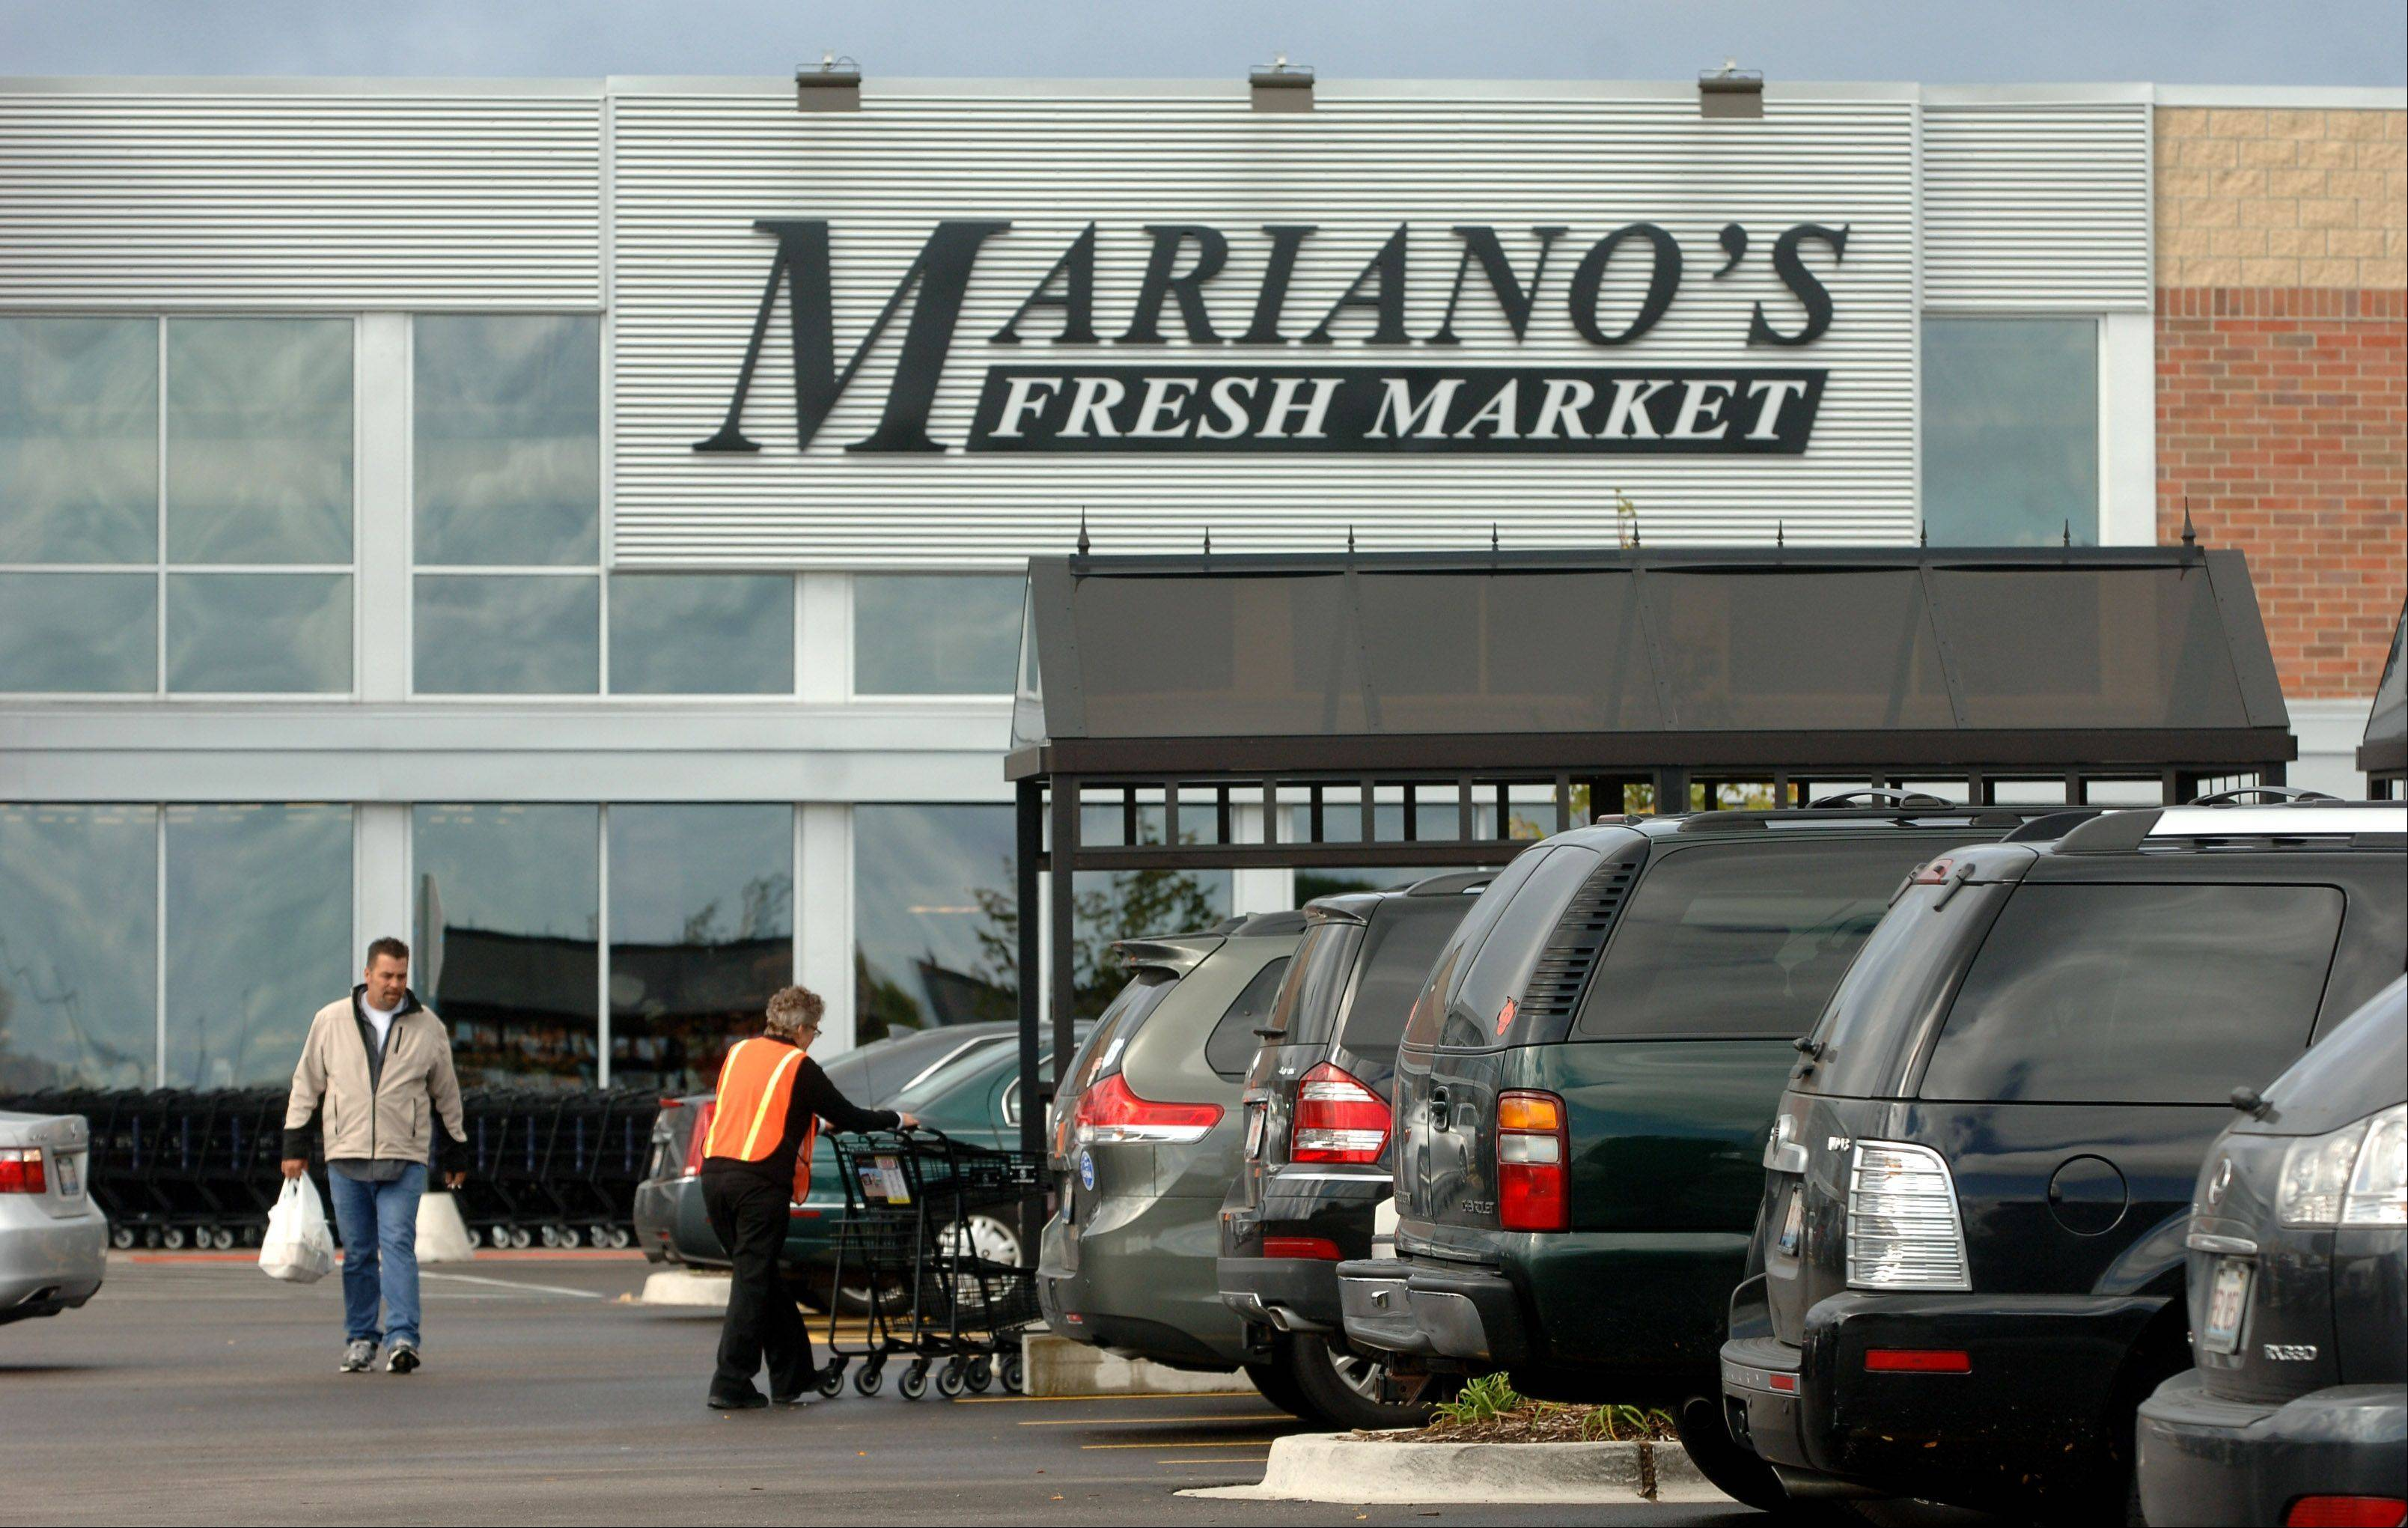 Until late fall, the parking lot at the Mariano's Fresh Marke